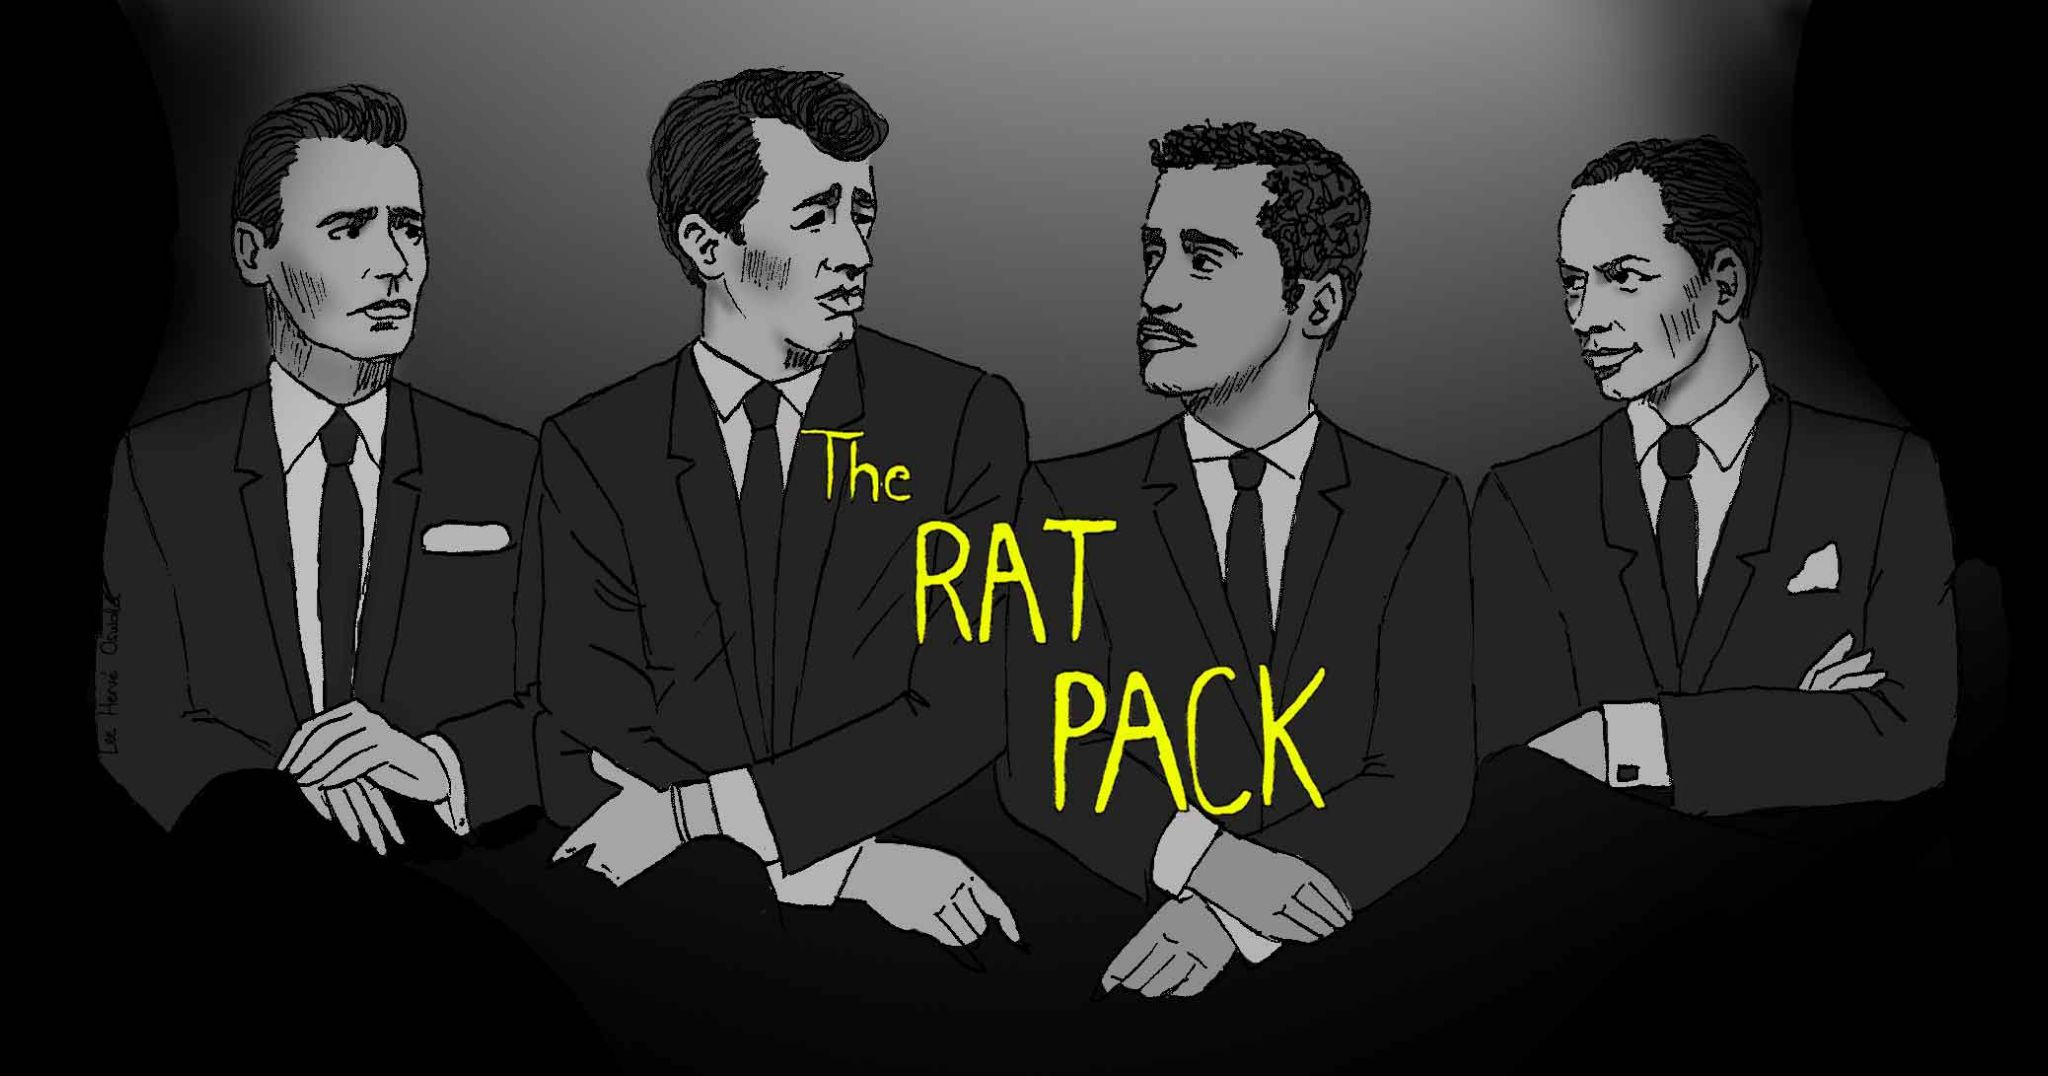 You Look Like A Goddamn Rat Pack